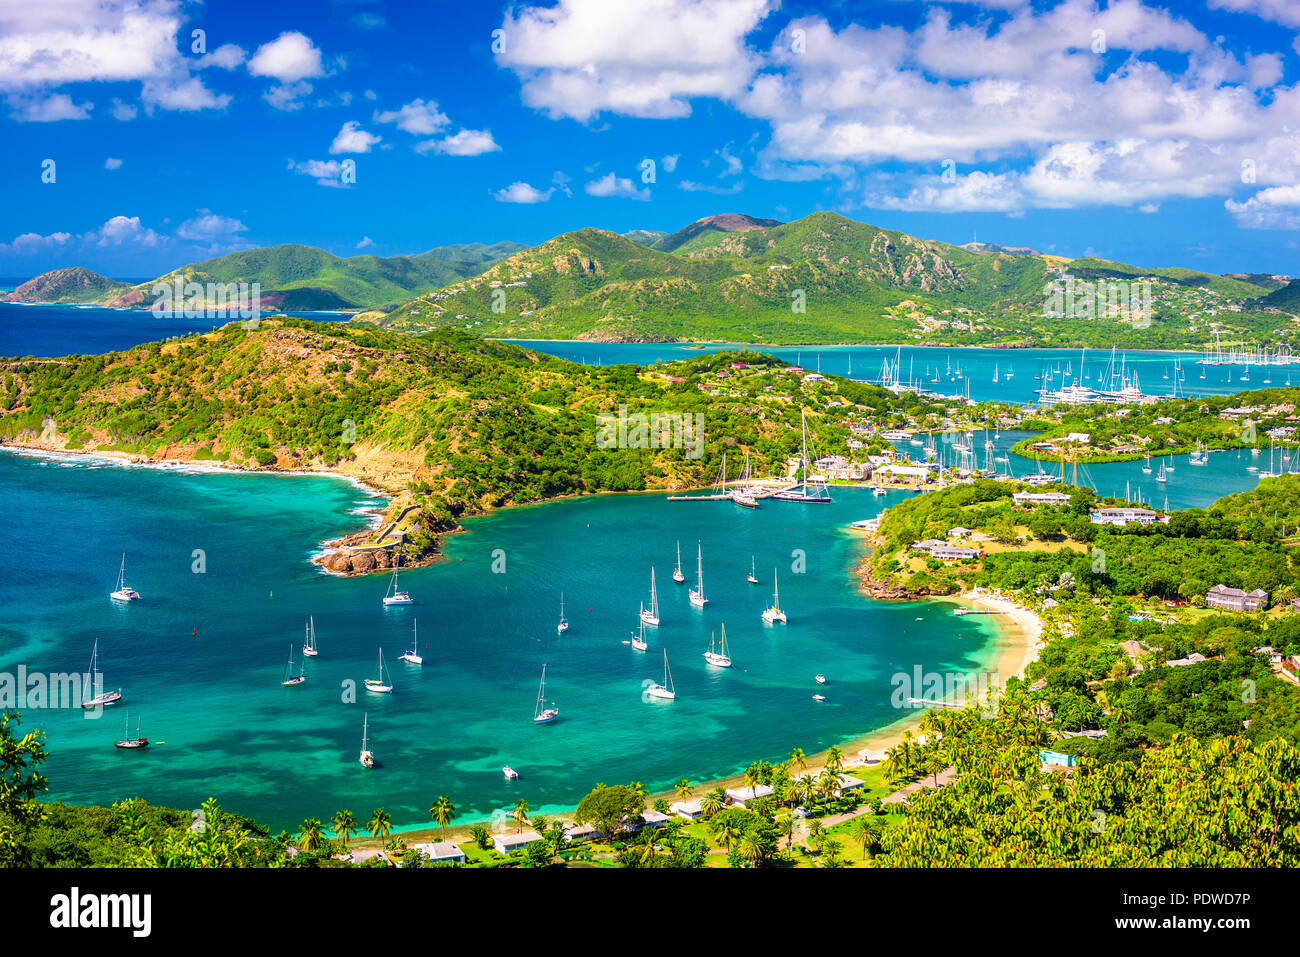 Shirley Heights, Antigua and Barbuda view from the overlook. - Stock Image